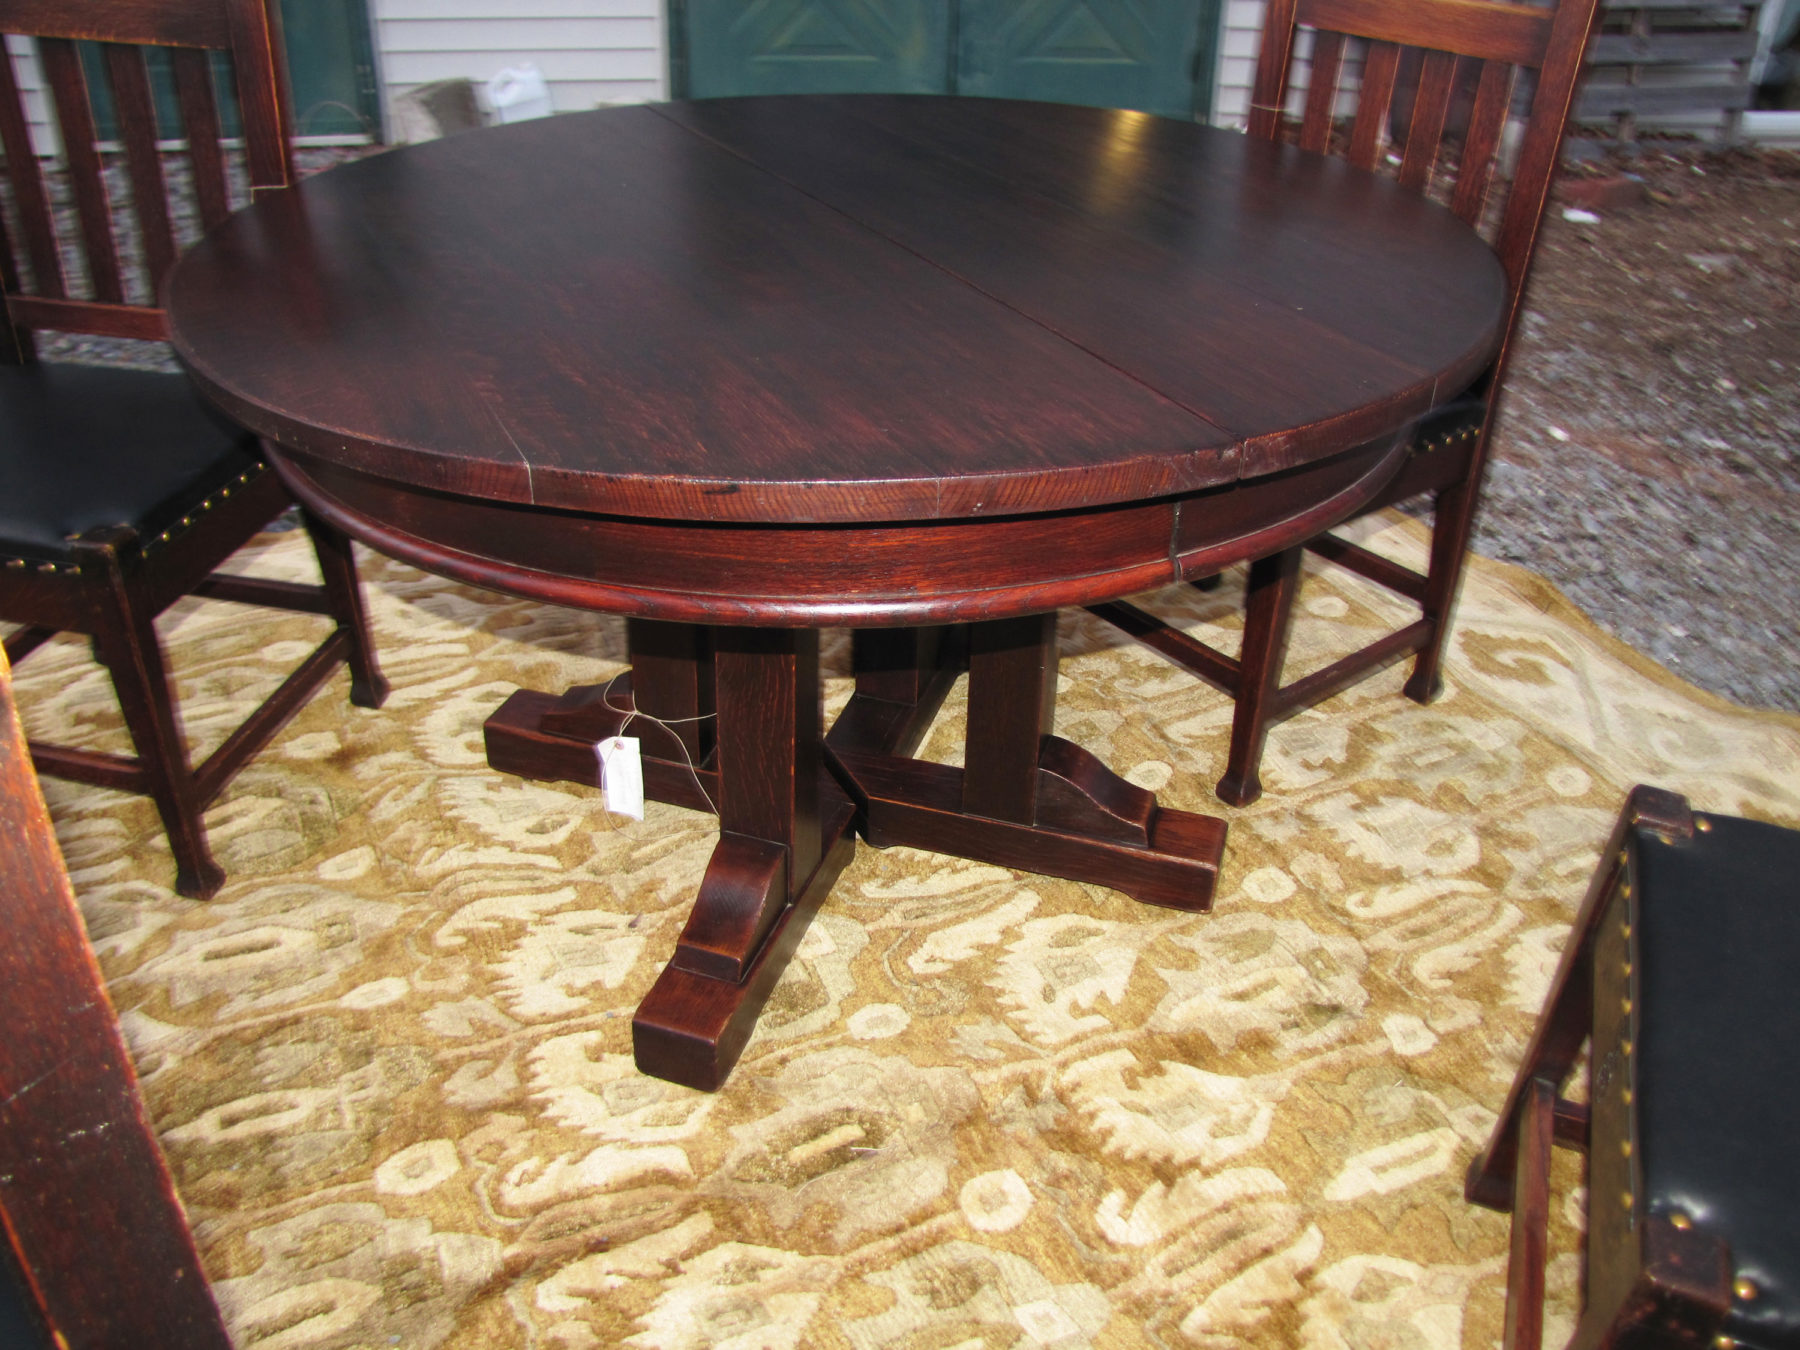 Home » Shop » Antique Furniture » Roycroft » Superb Set Of Roycroft Dining  Table And Four Chairs W4148